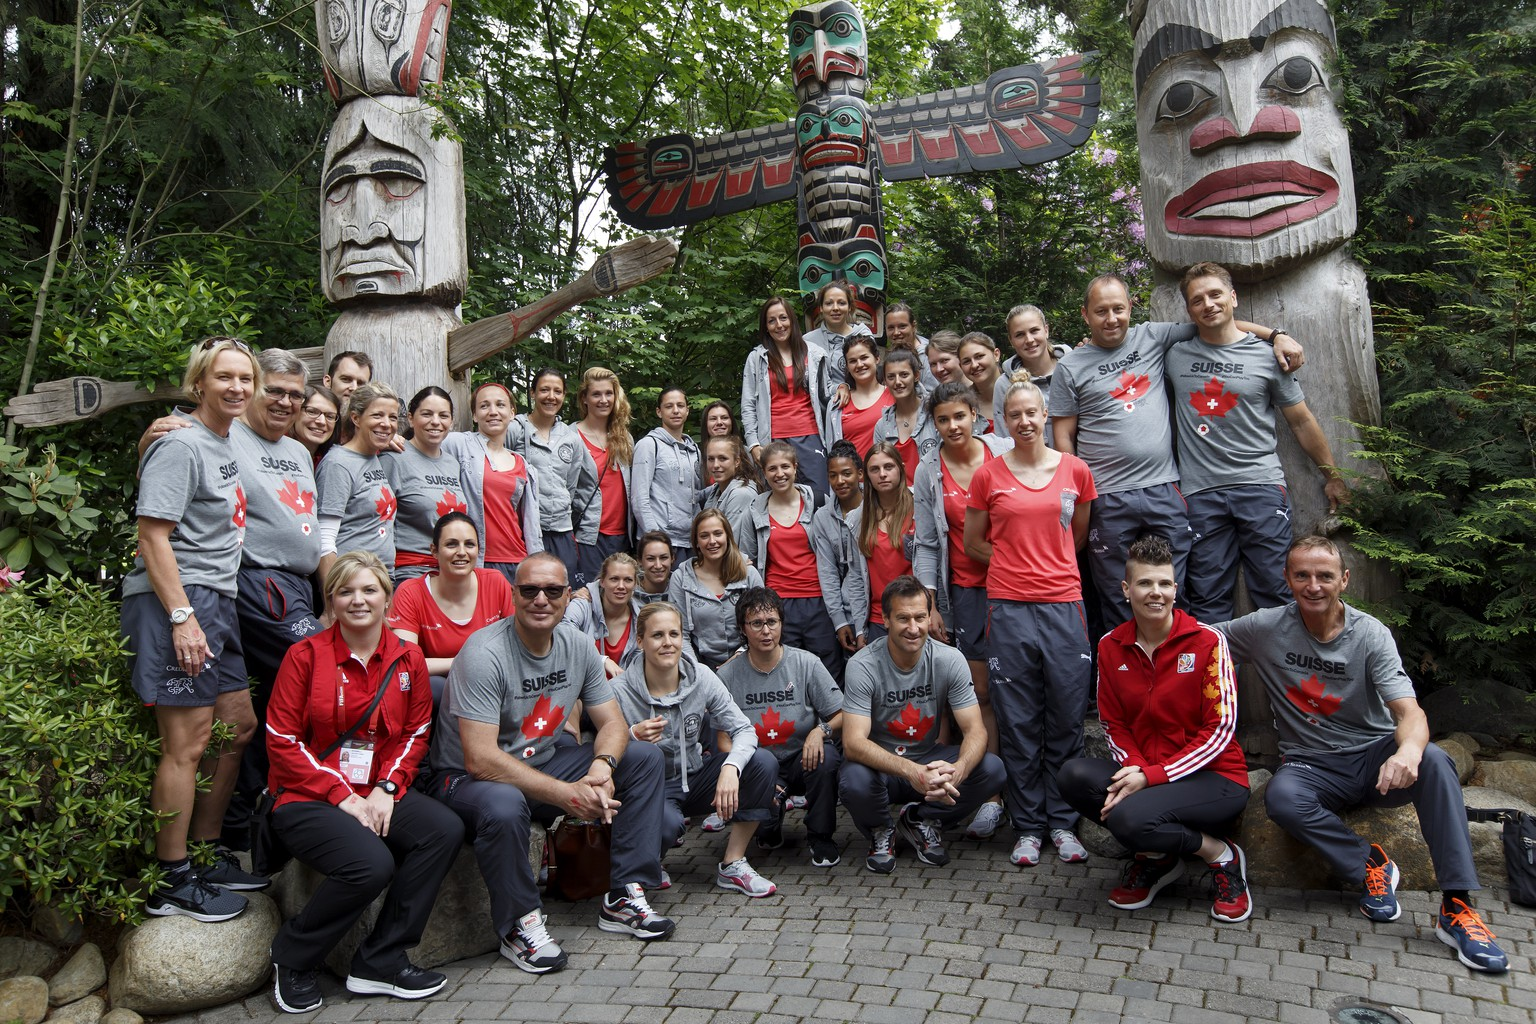 Switzerland's players and Switzerland's staff pose in front of Totem Poles, during an excursion at the Capilano Bridge Suspension Park, in Vancouver, Canada, Thursday, June 4, 2015. The Switzerland national soccer team prepare its the FIFA Women's World Cup Canada 2015. (KEYSTONE/Salvatore Di Nolfi)